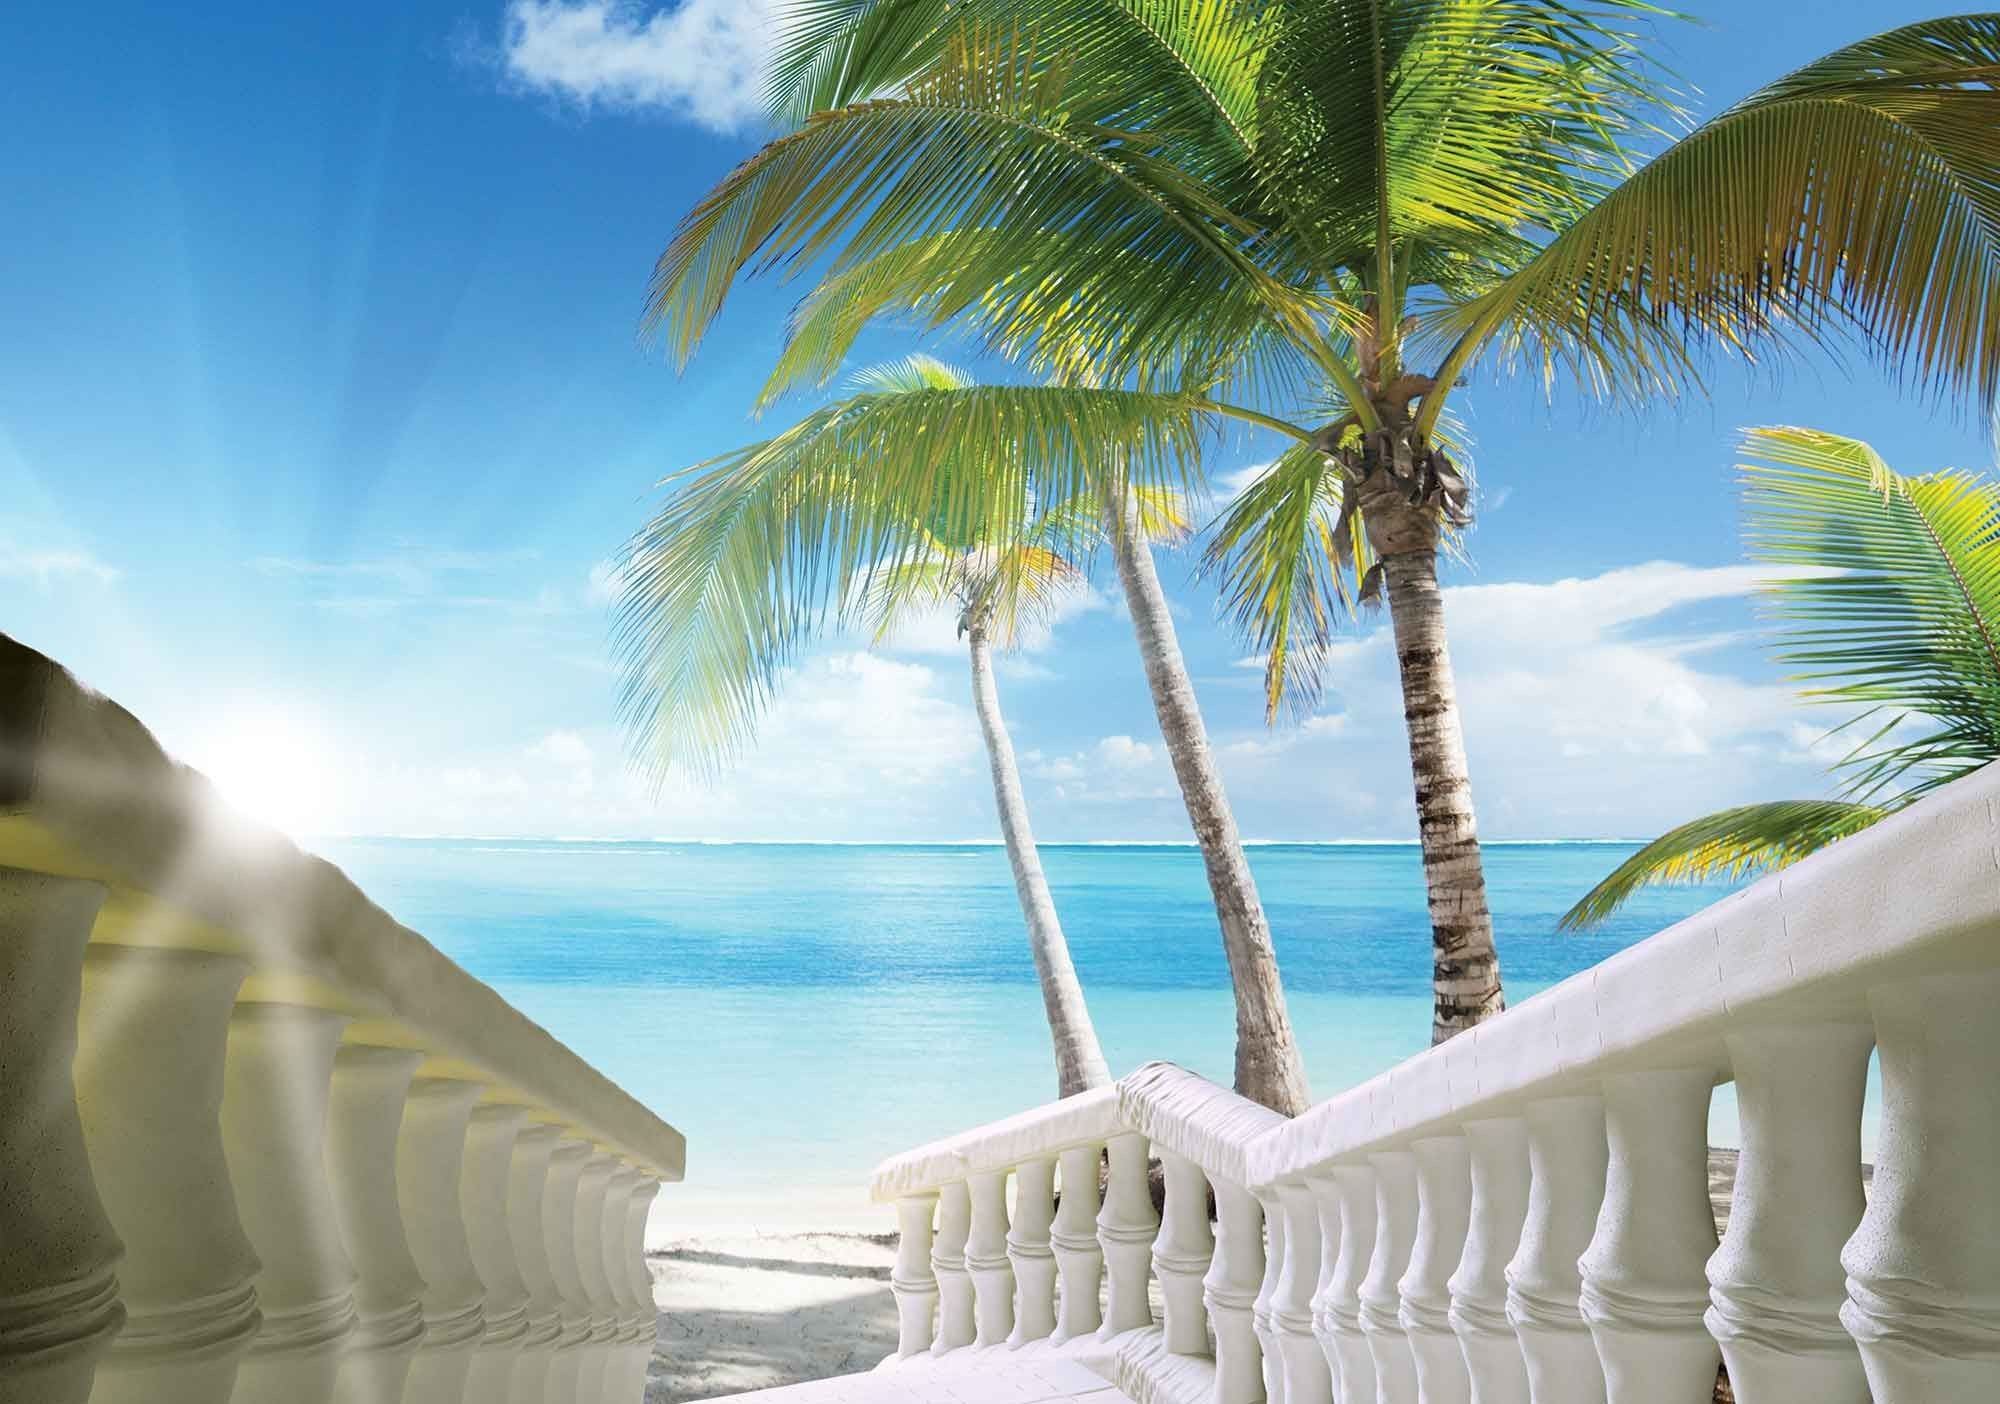 2000x1404 Easy install - wallpaper mural Beach Tropical Scene 828